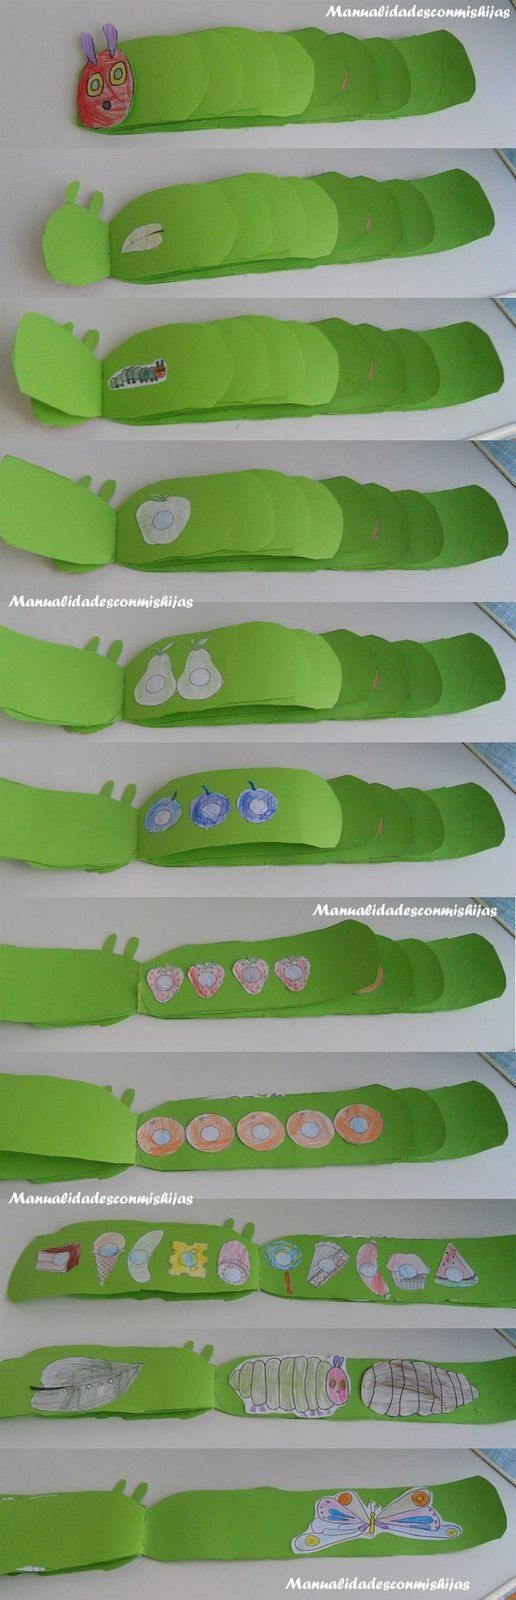 2017 05 the very hungry caterpillar lesson plans - Hacemos Un Cuento The Very Hungry Caterpillar 7 A Os